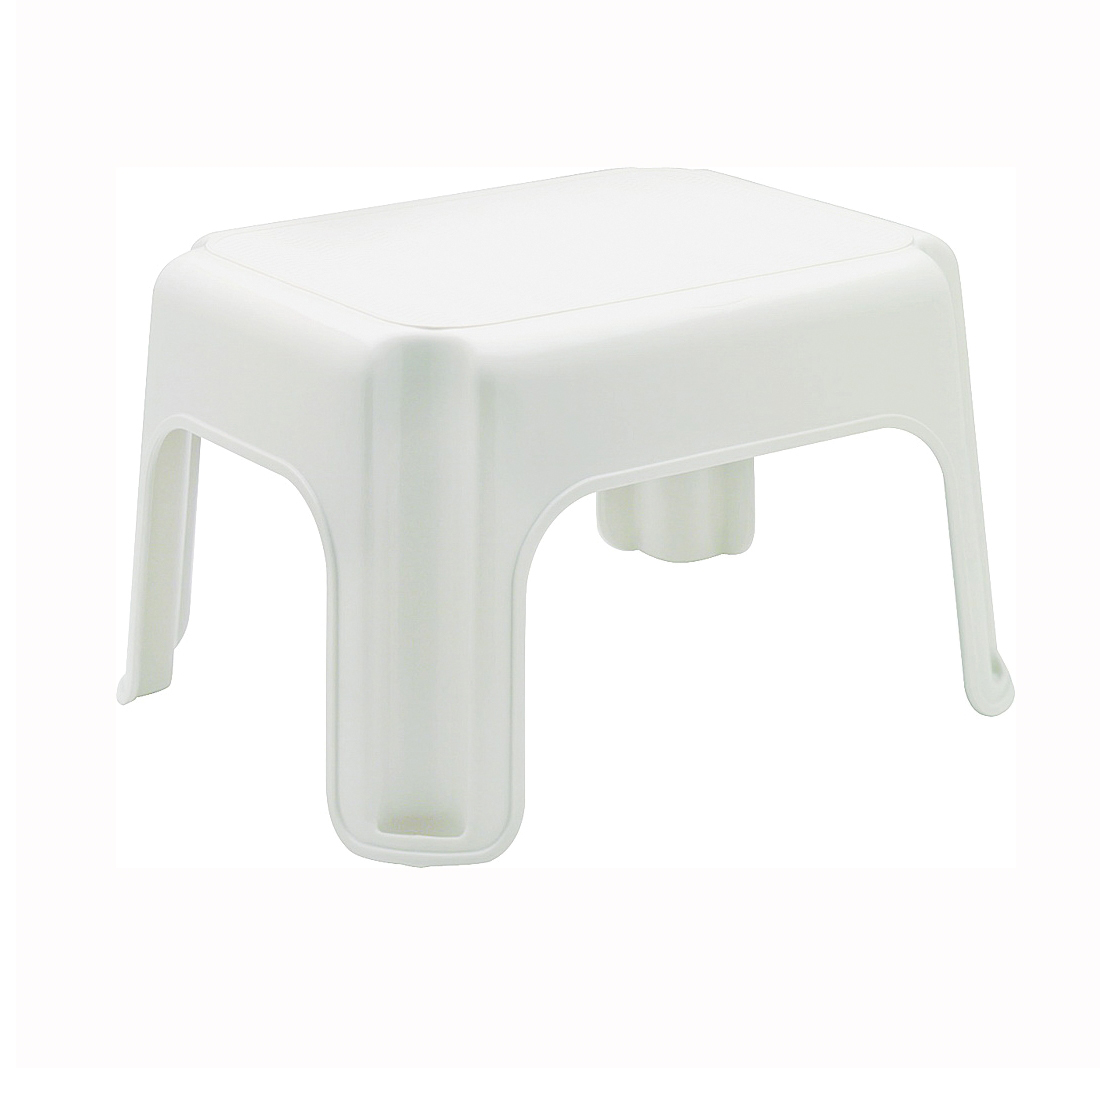 Picture of Rubbermaid FG420087BISQUE Utility Step Stool, 9-1/4 in H, Bisque